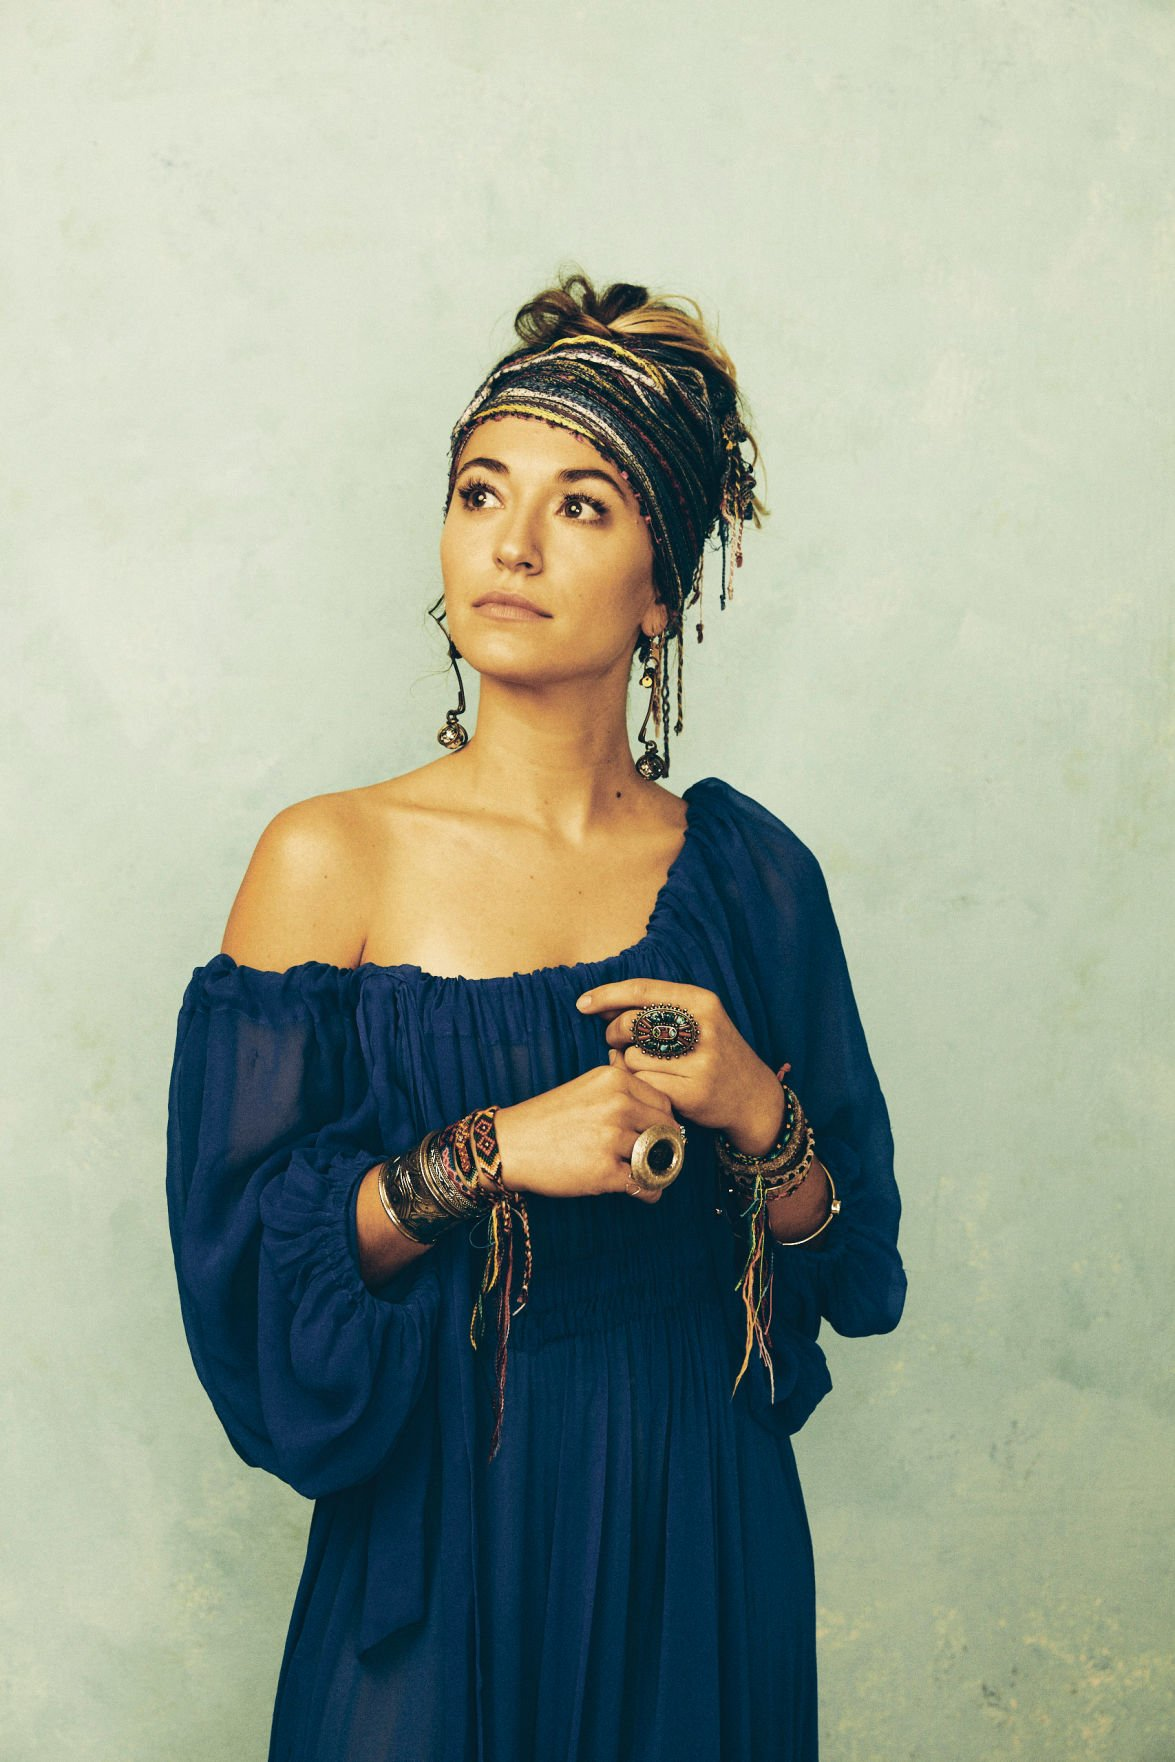 Lauren Daigle copy for Red